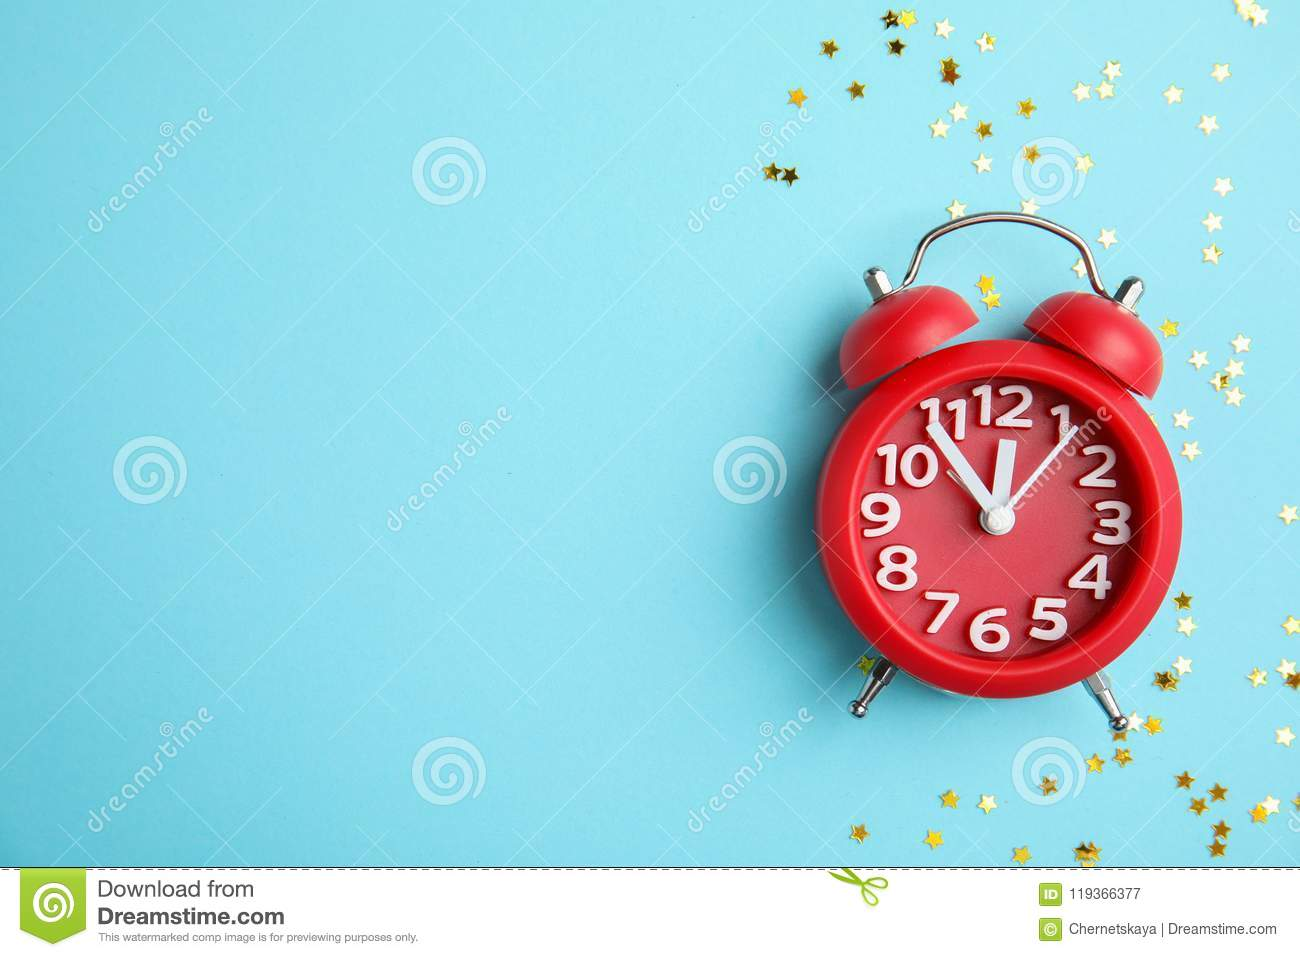 download composition with alarm clock and confetti on color background christmas countdown stock image